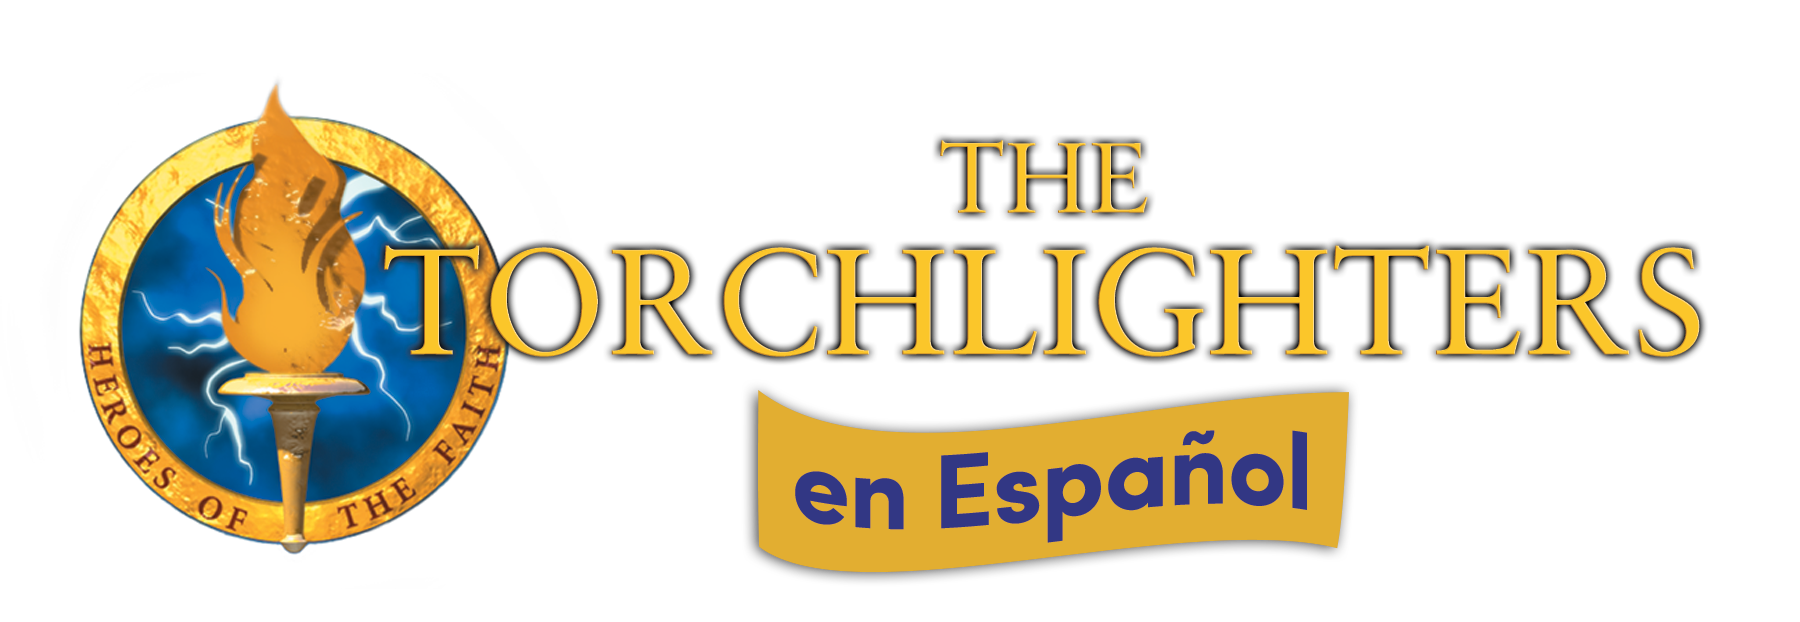 Torchlighters series logo spanish